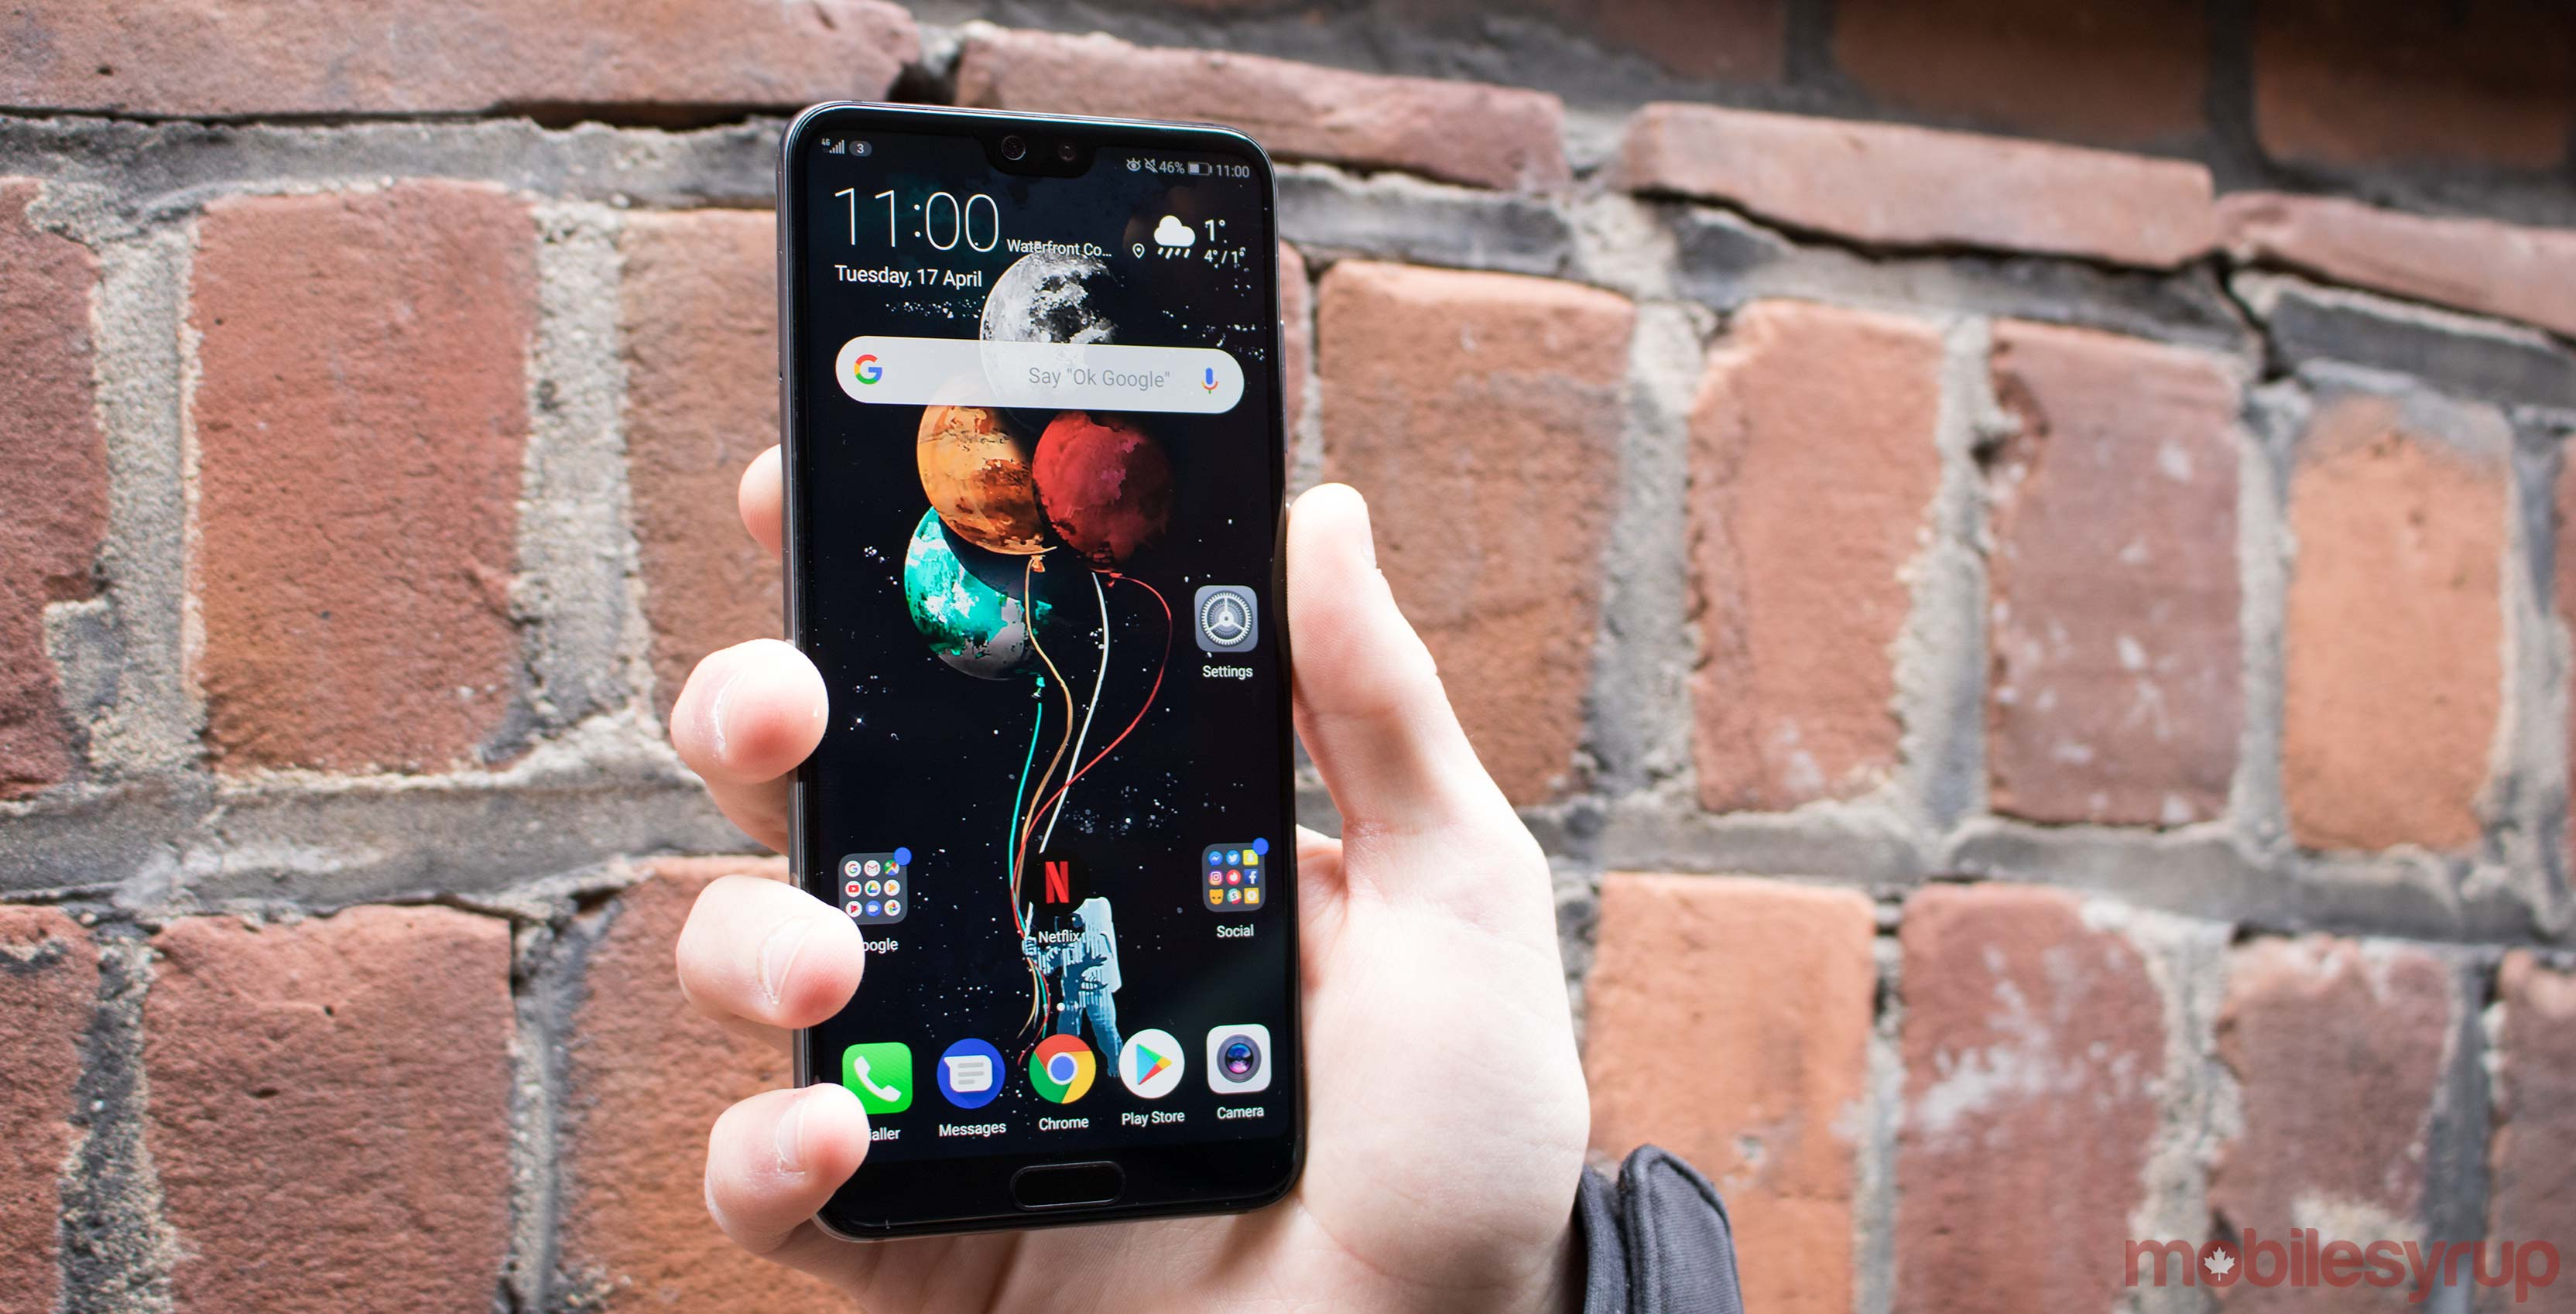 The Huawei P20 series is now available in Canada